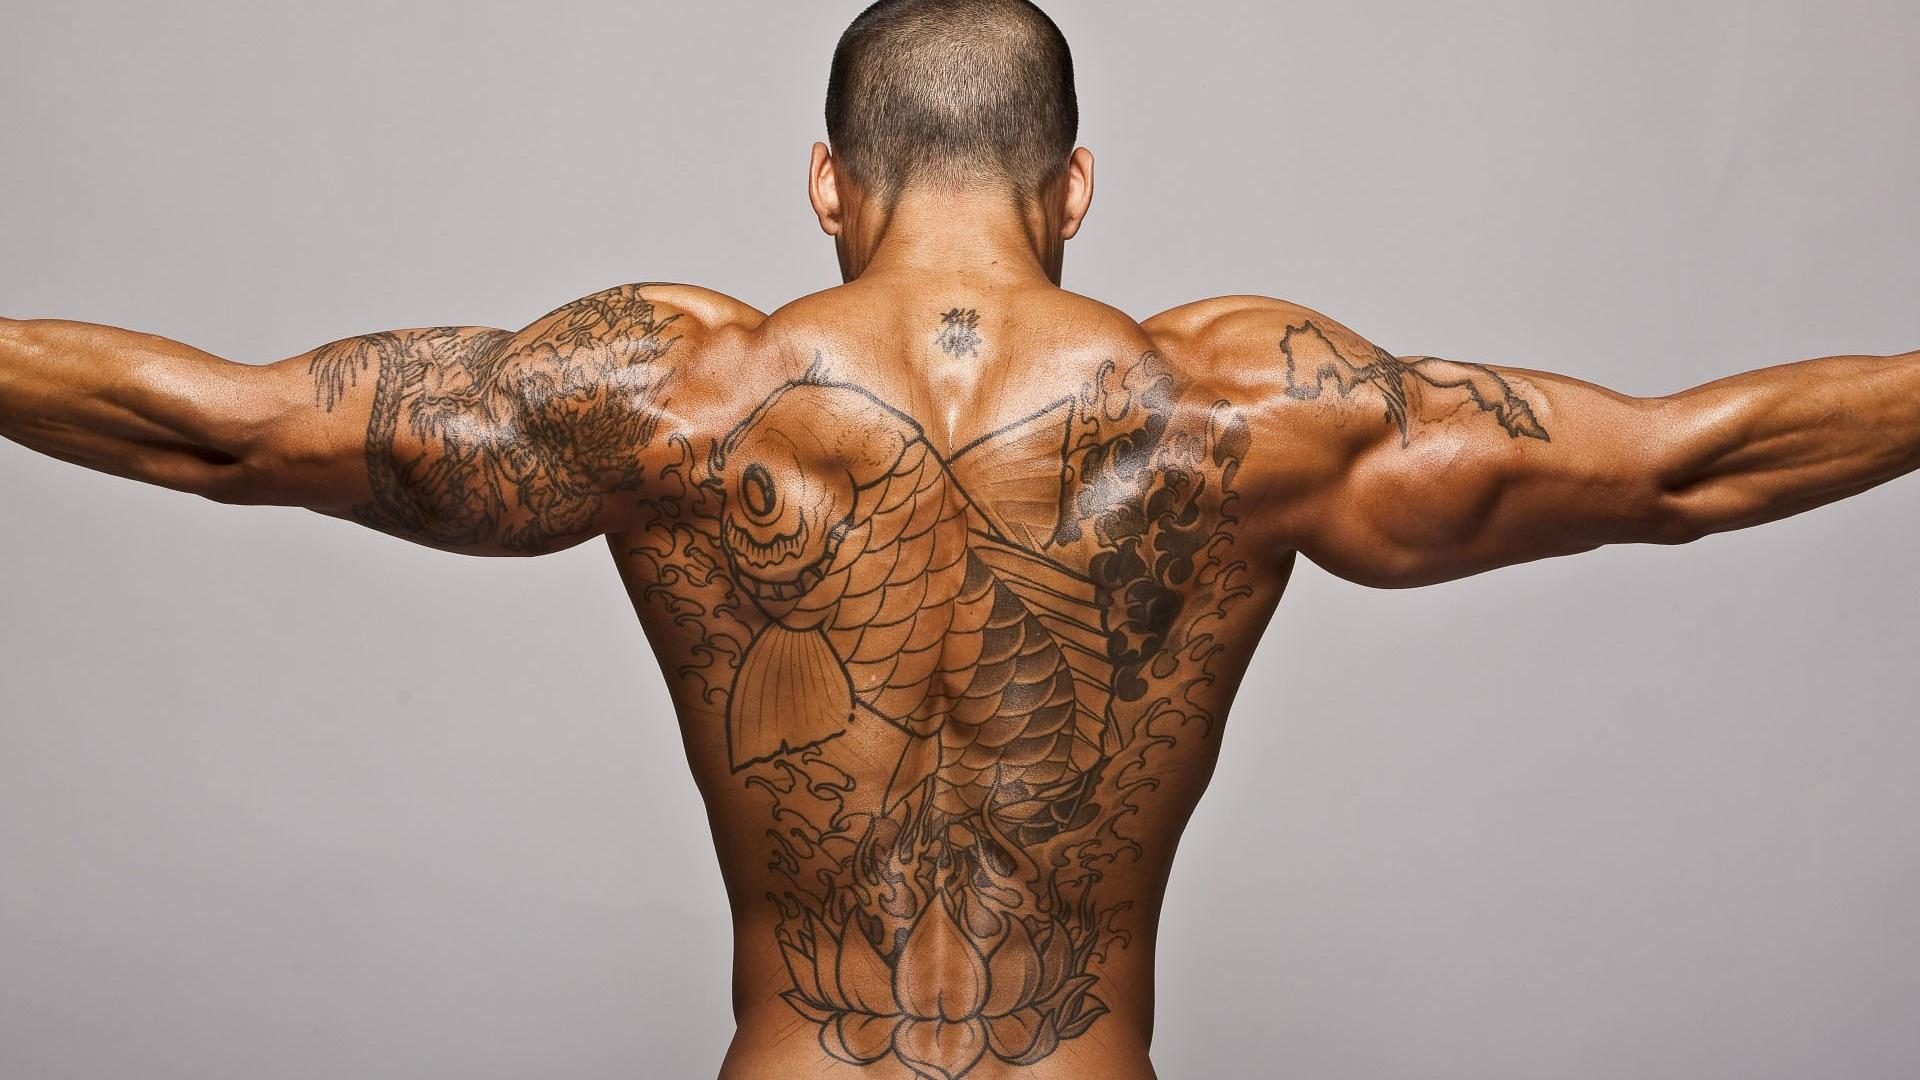 11 Awesome And Coolest Tattoo Ideas For Men